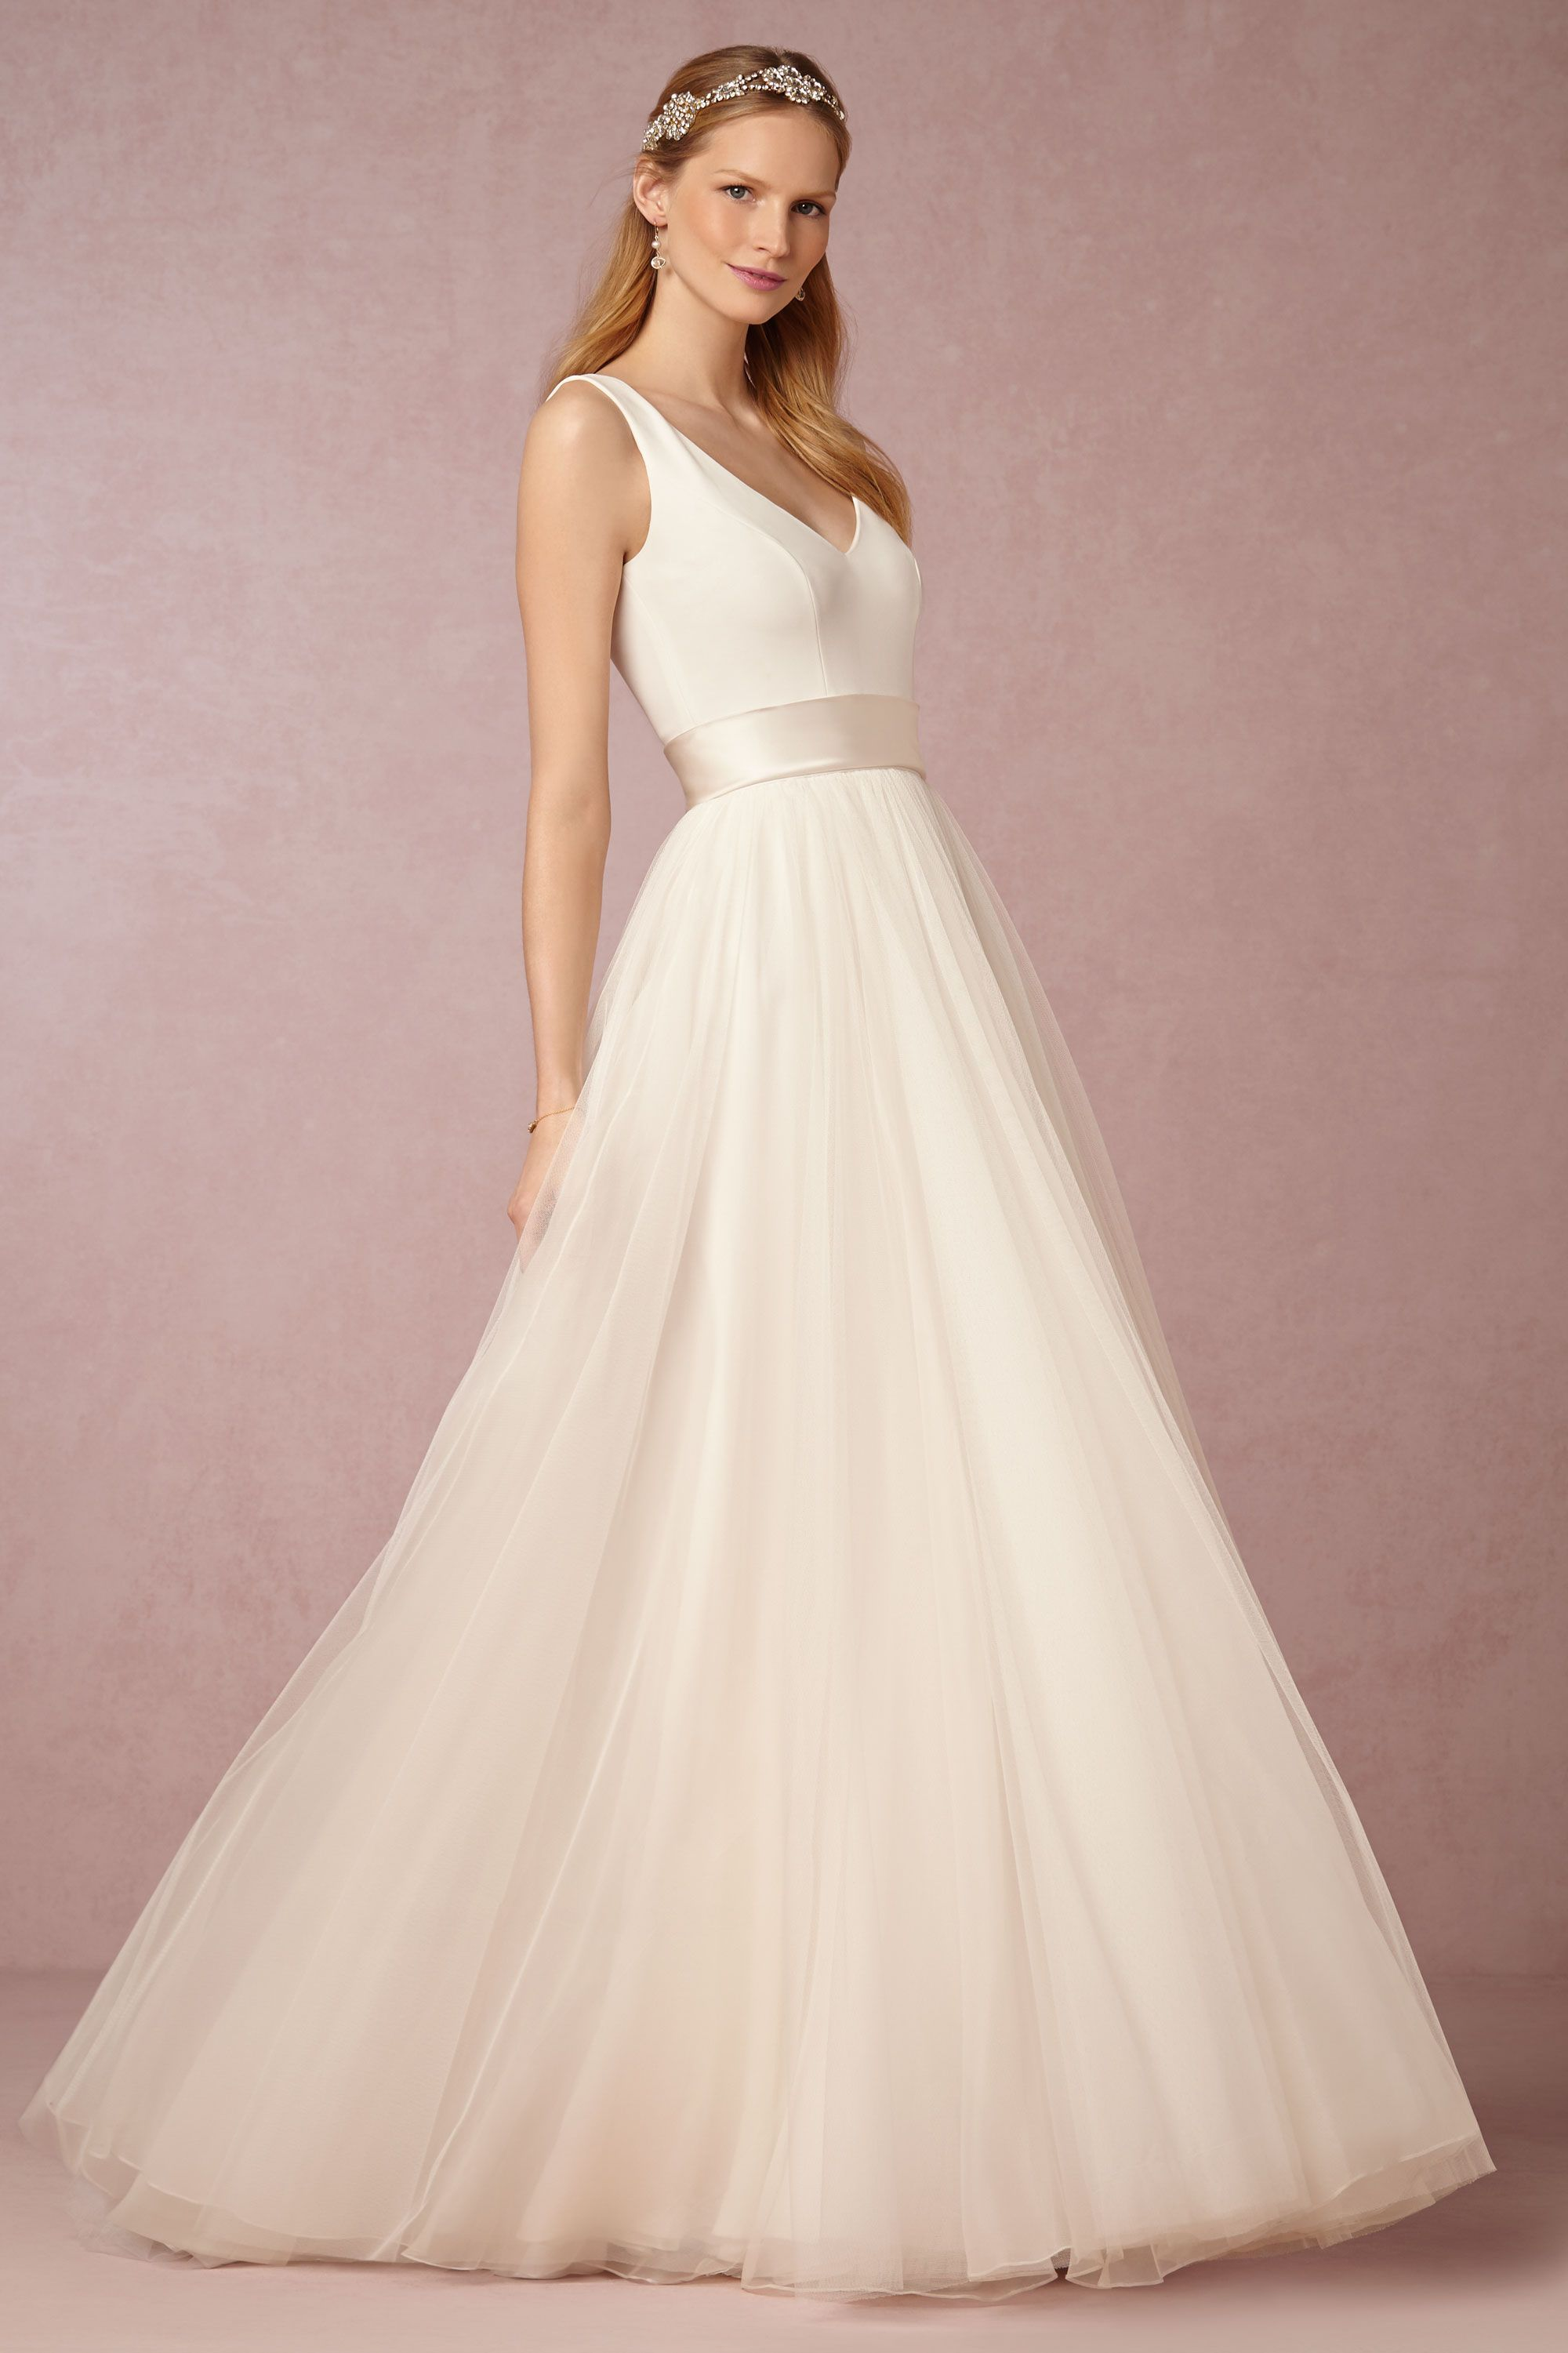 Fabienne Gown #BHLDNwishes | Your BHLDN Wishes | Pinterest | Gowns ...